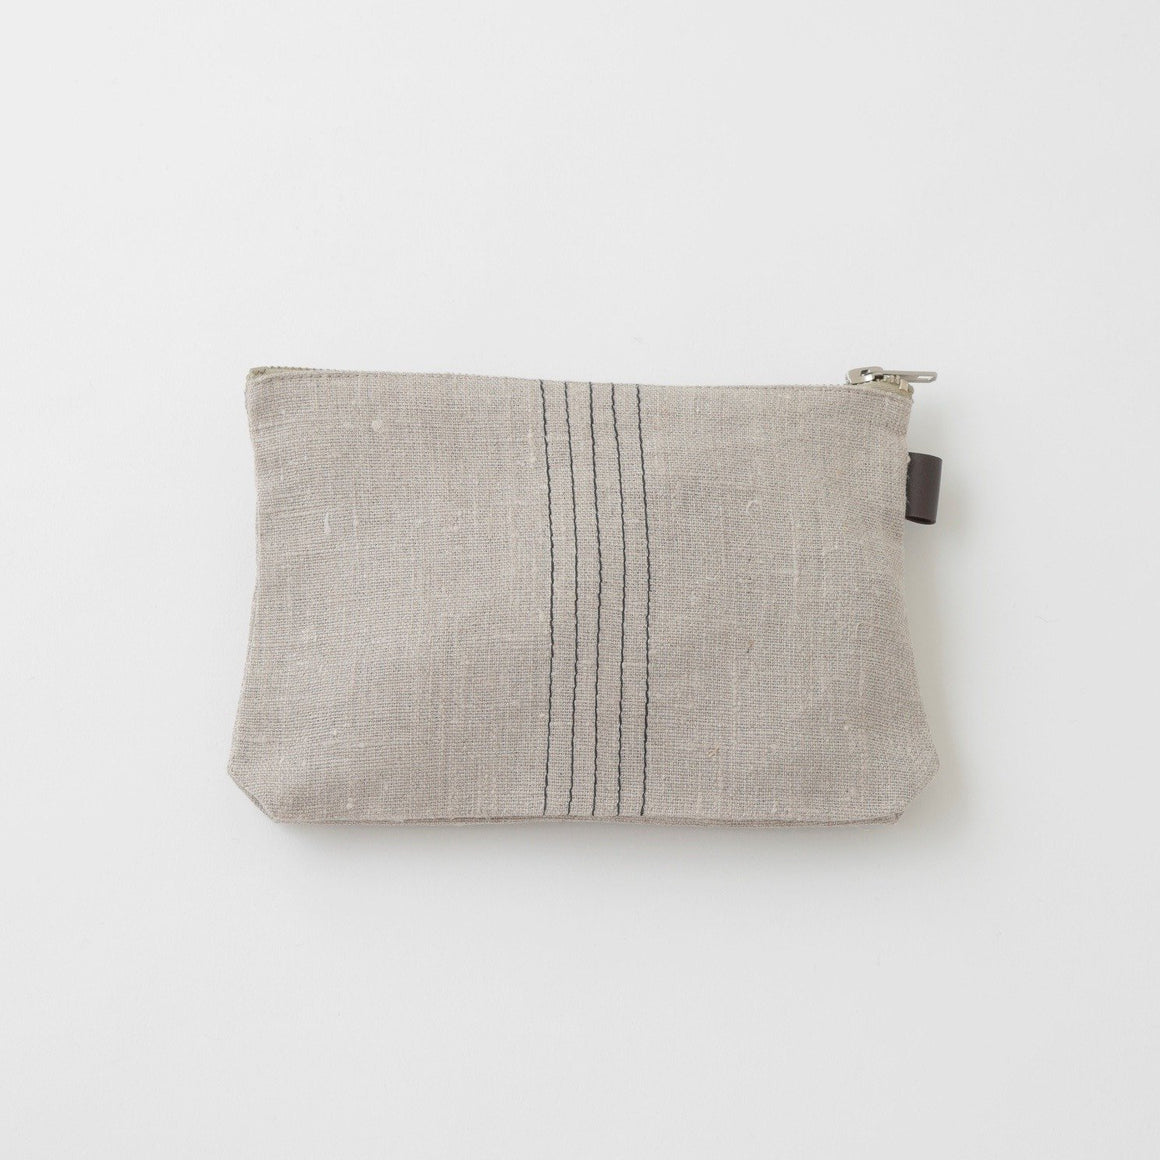 Natural Linen Pouch, Pouch - Grace Gordon